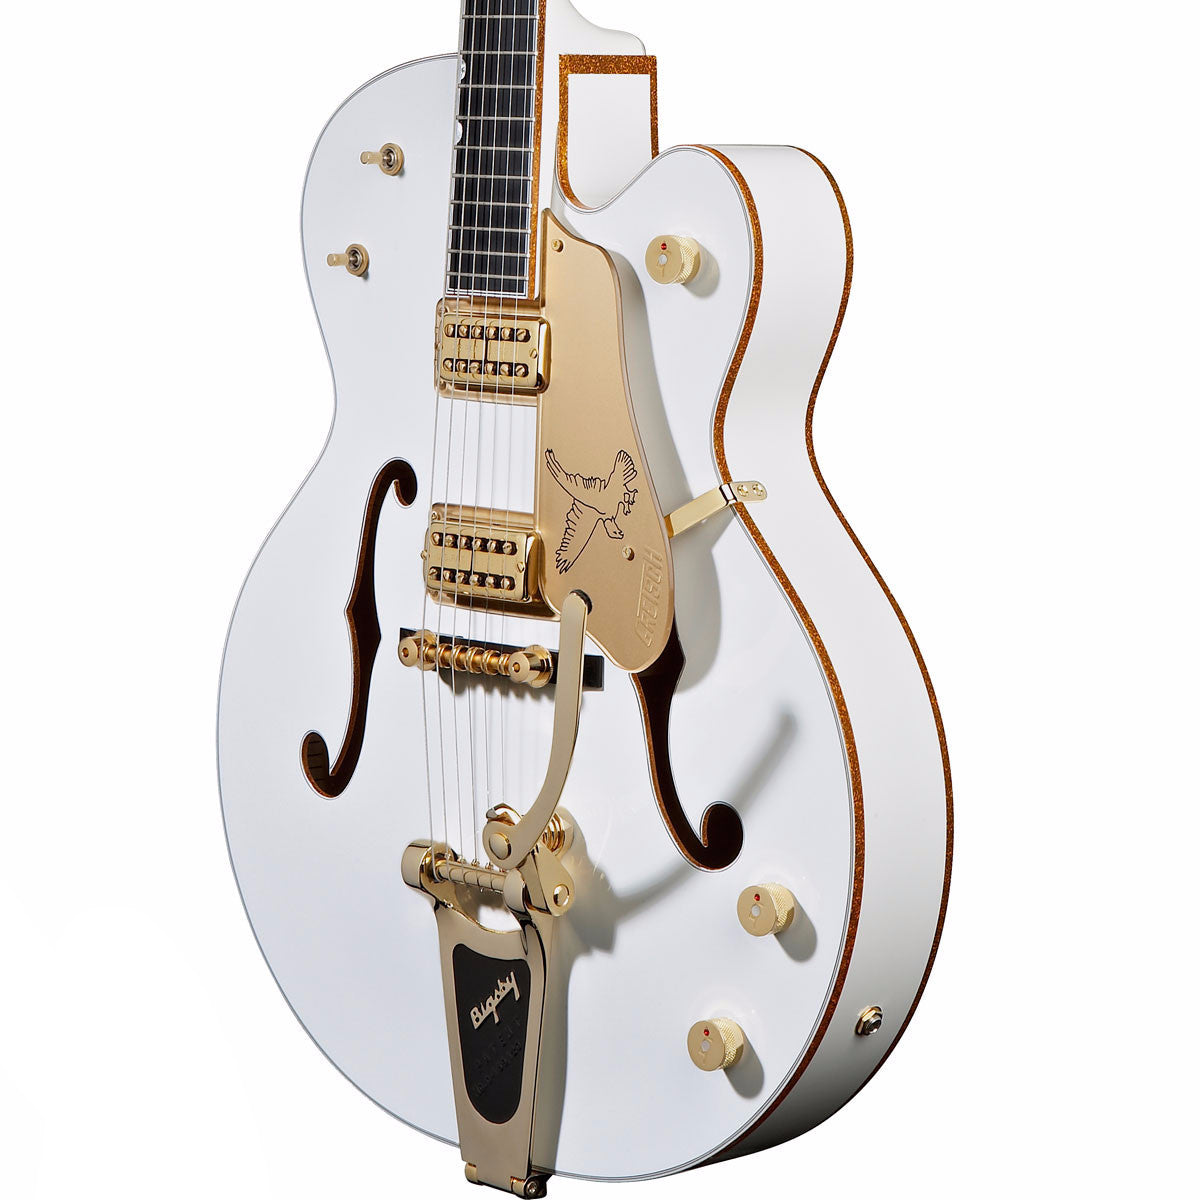 Gretsch G6136T - White Falcon w/Bigsby - Vintage Guitar Boutique - 4